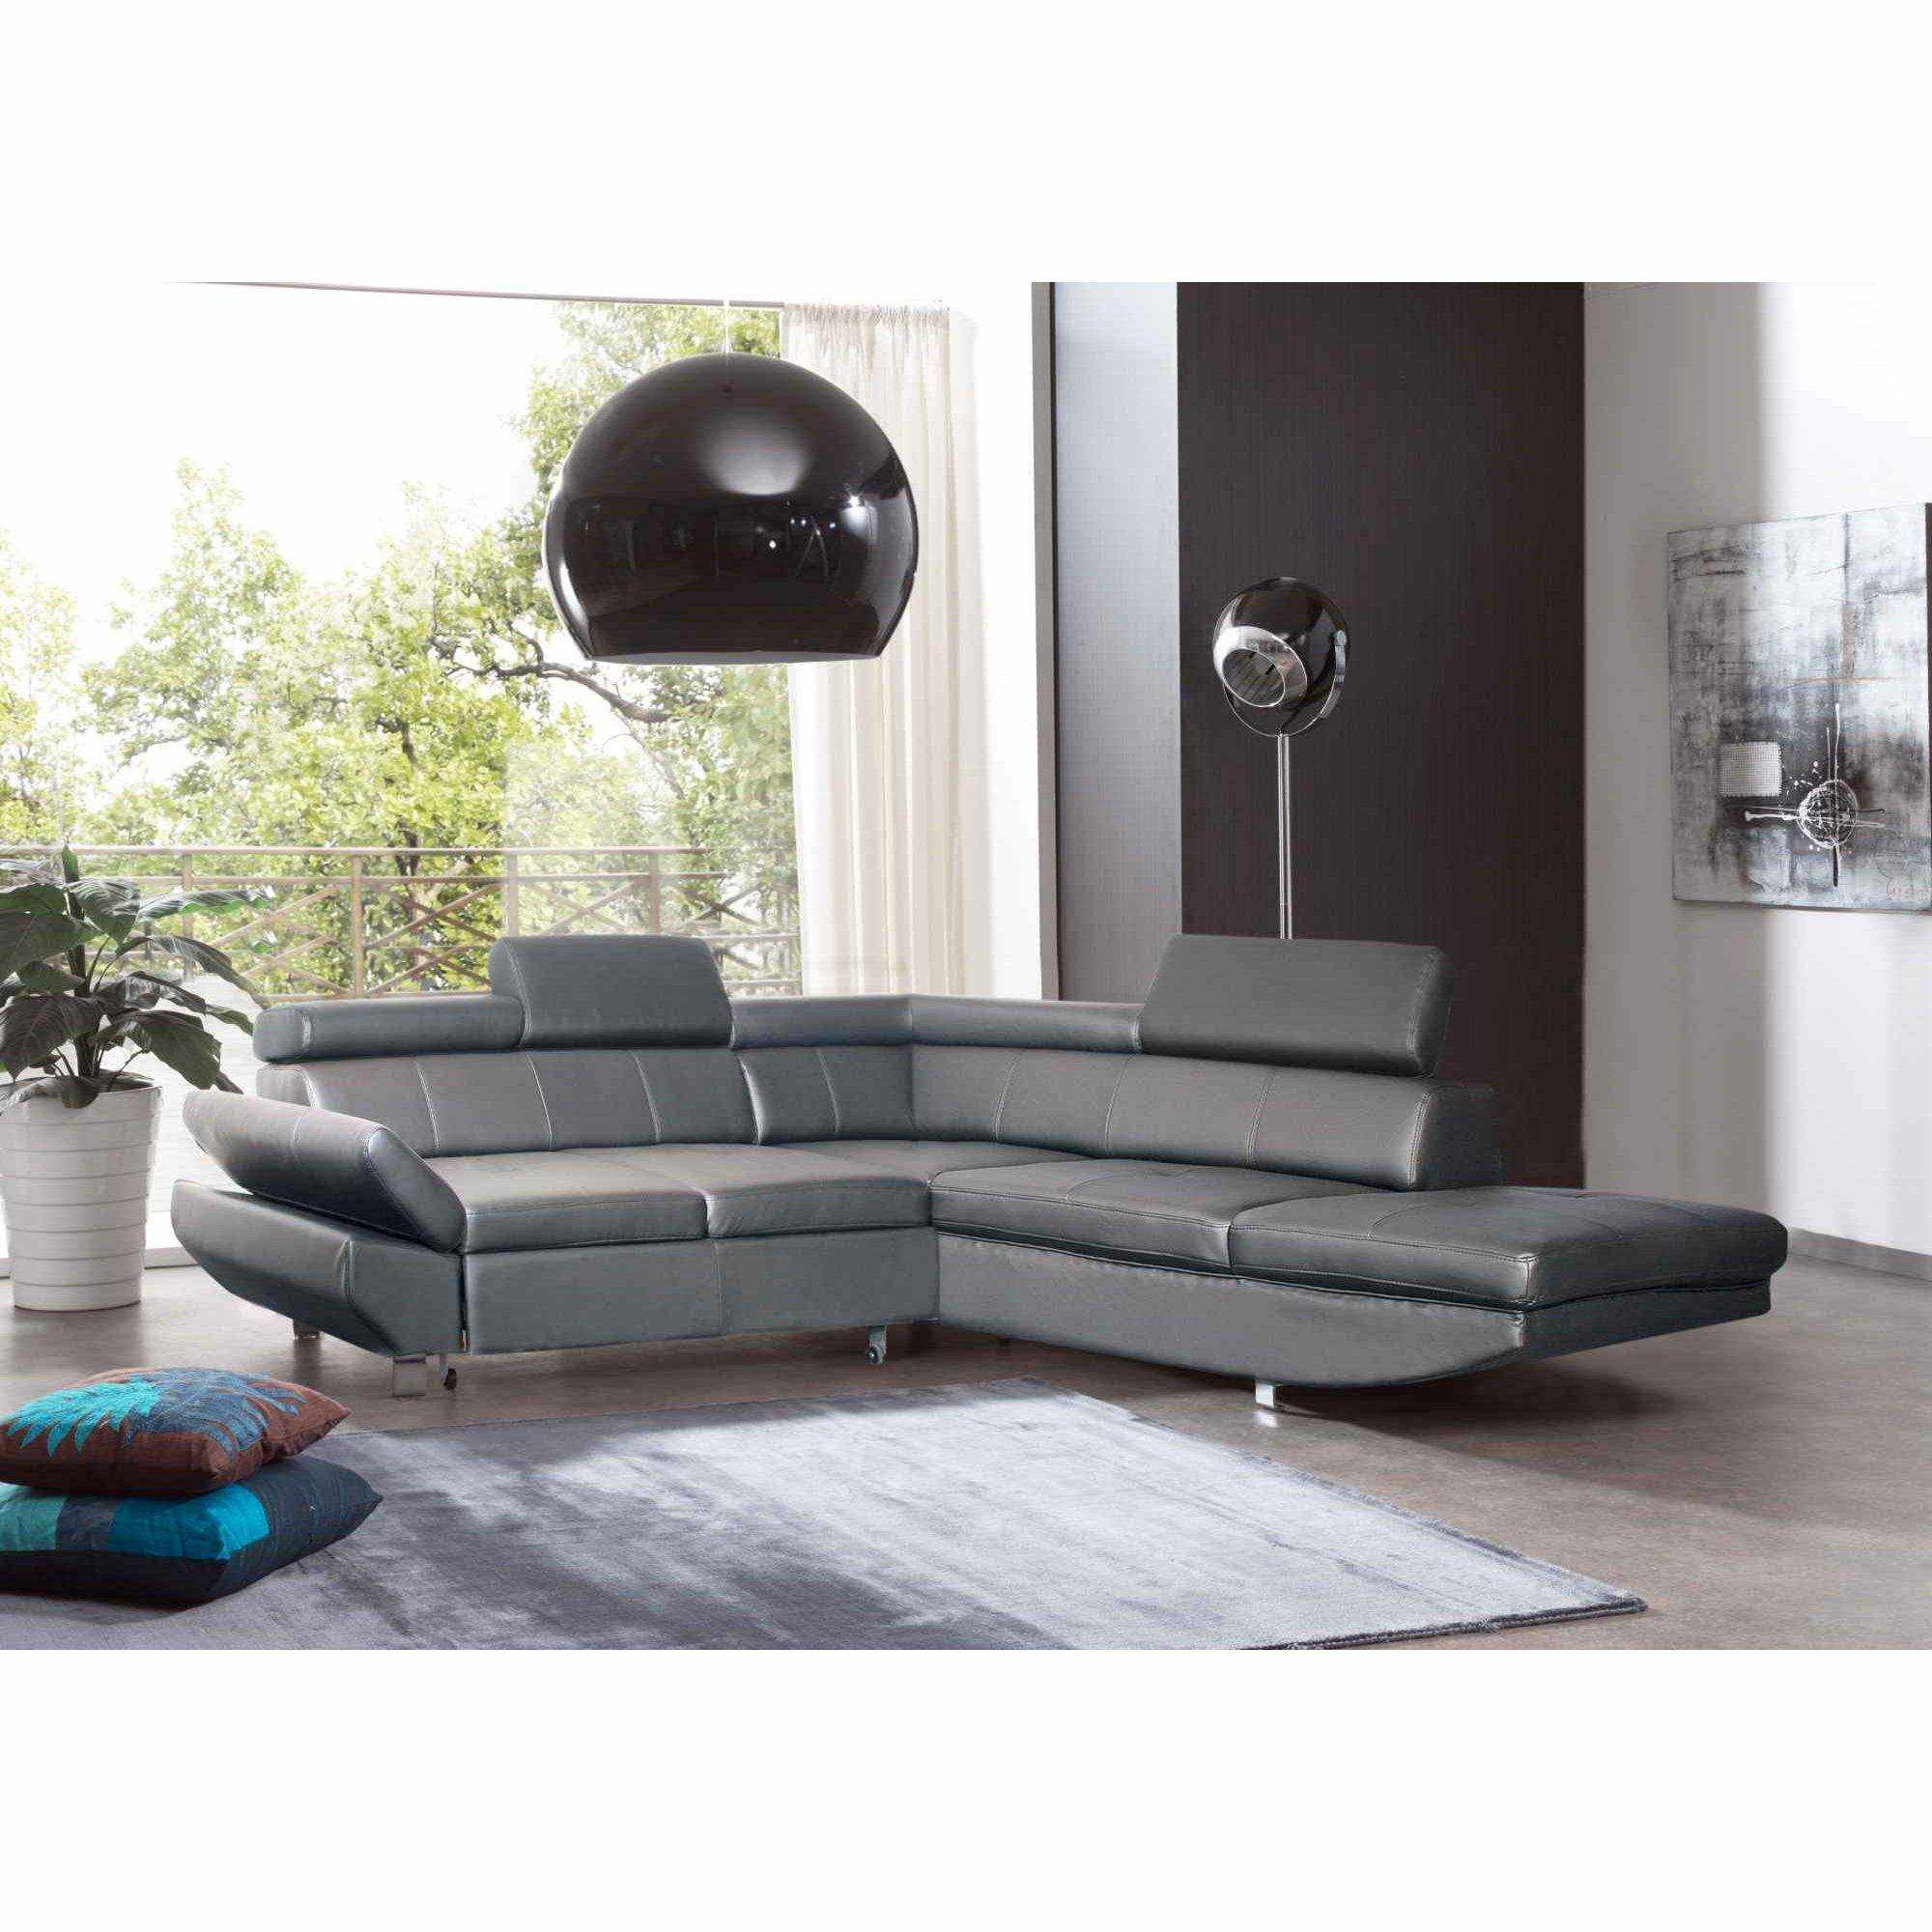 deco in paris canape d angle design convertible gris